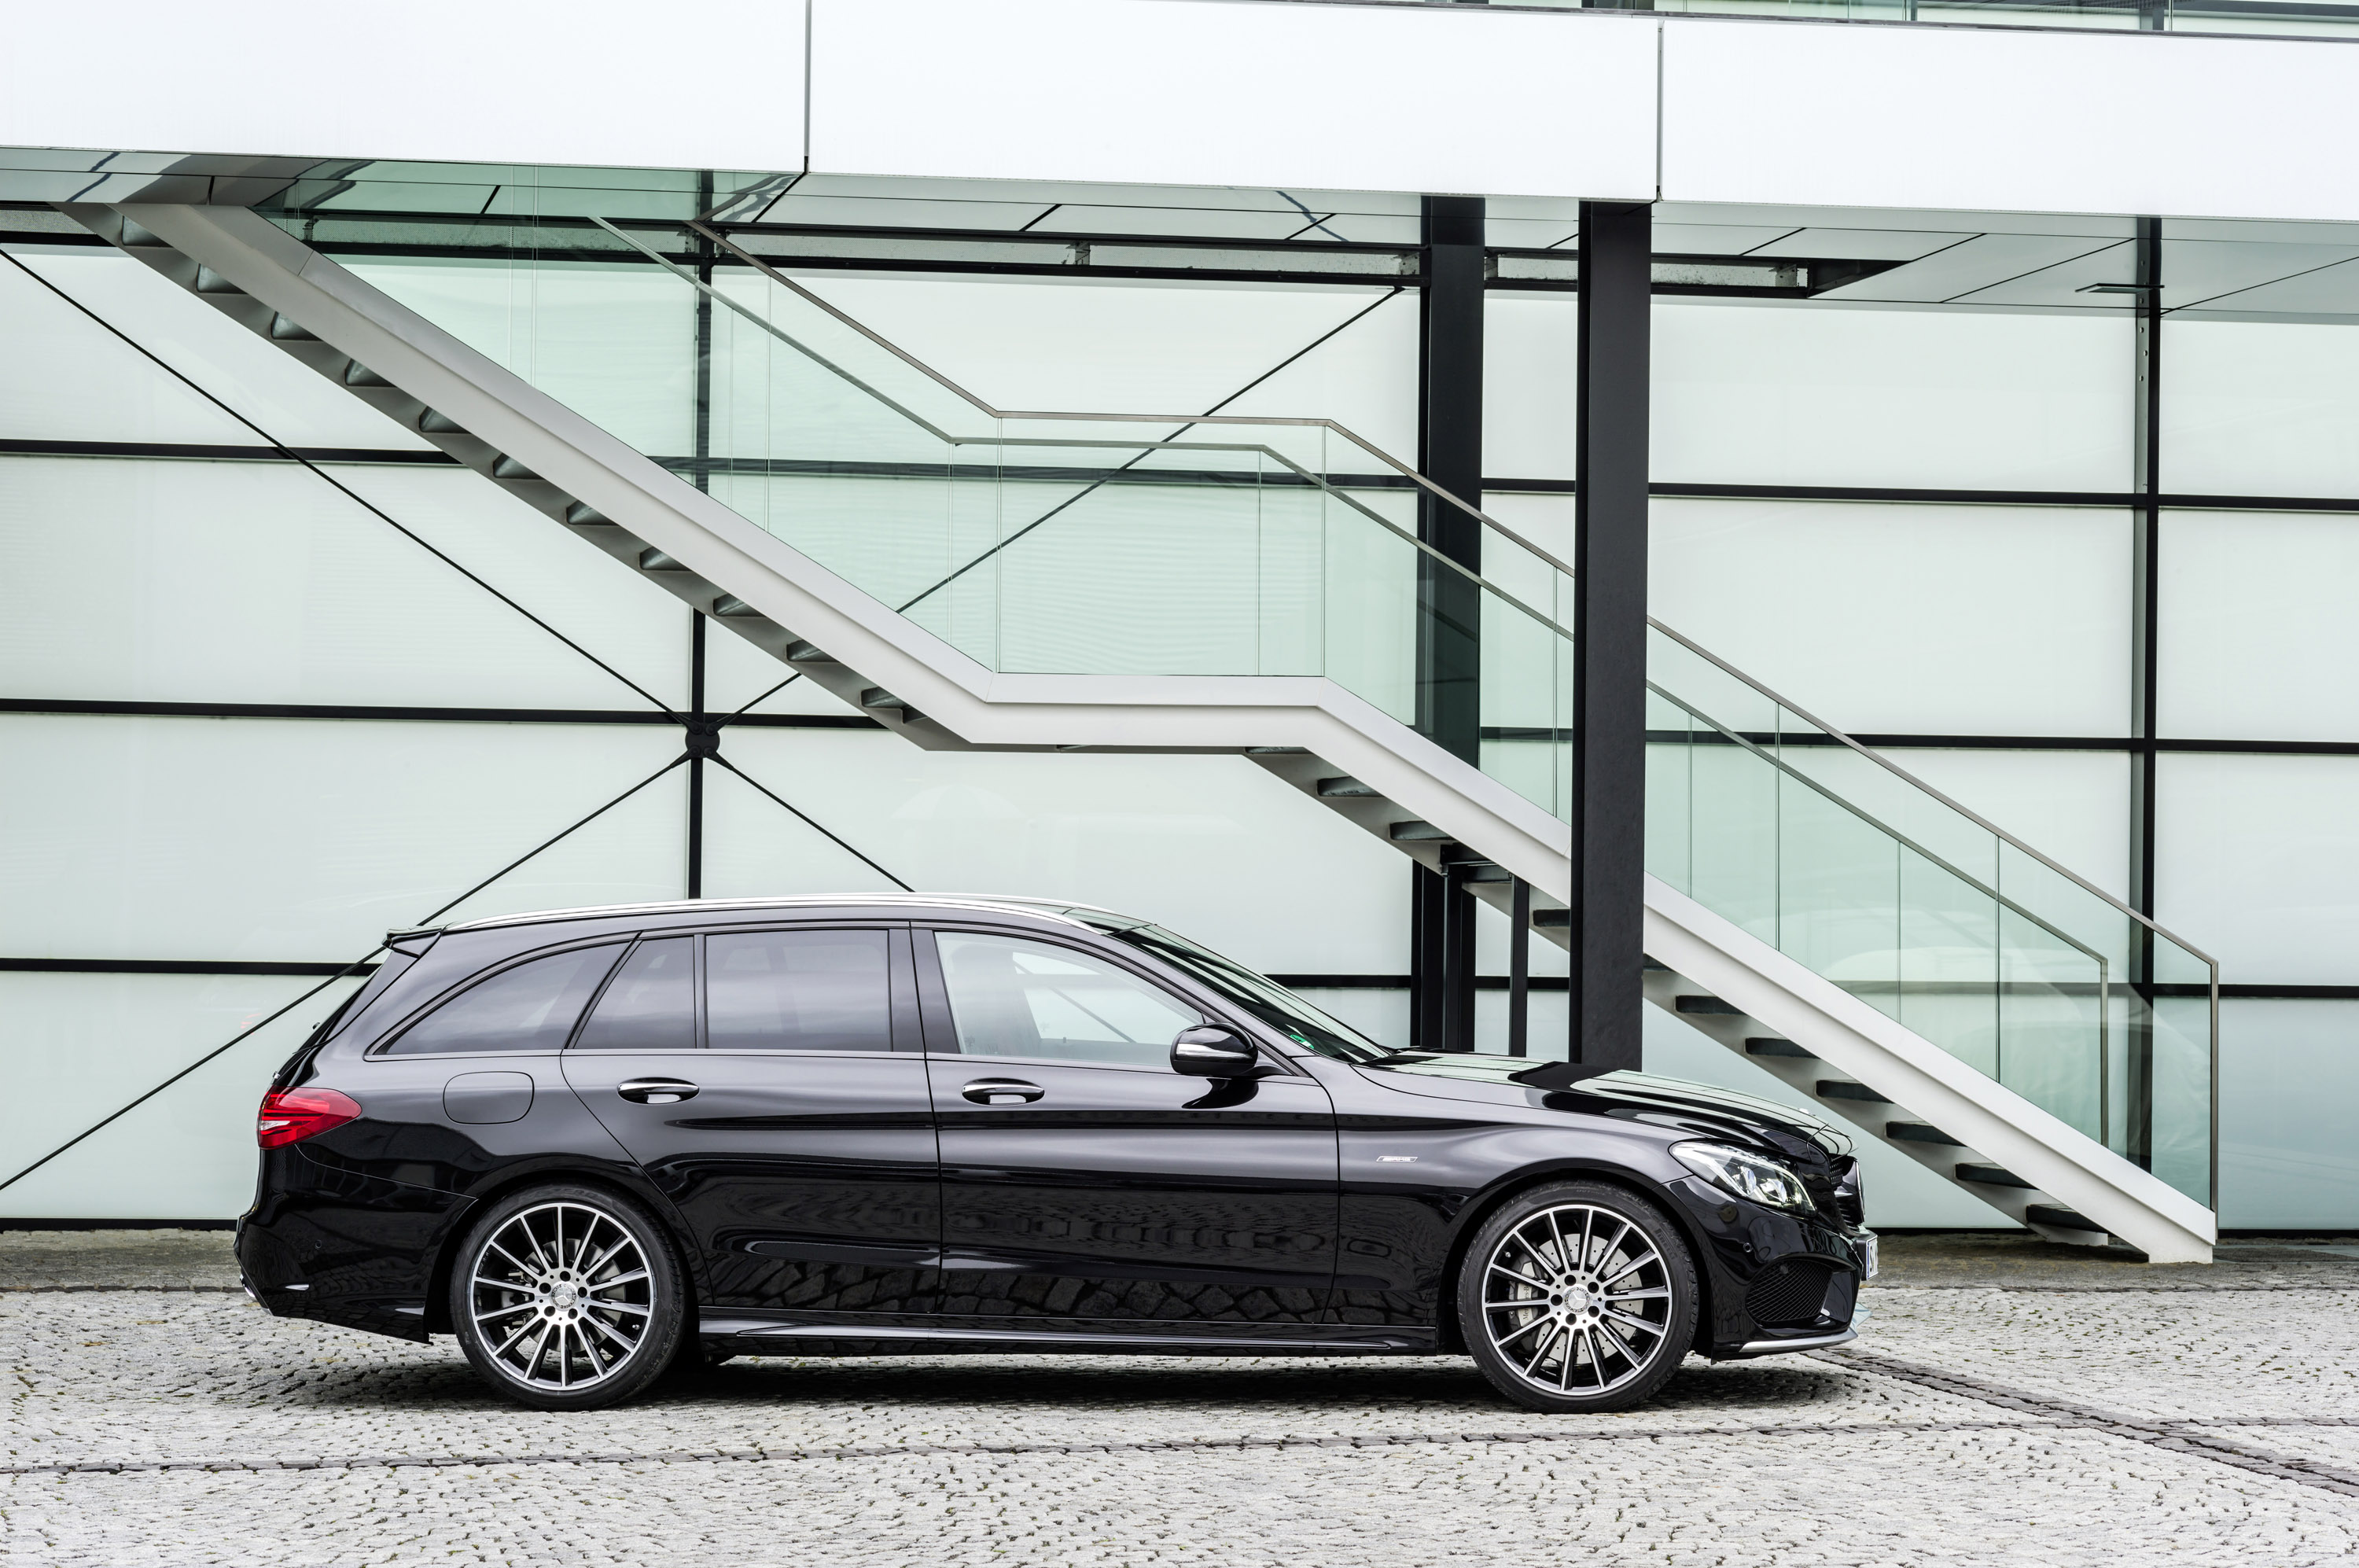 https://www.automobilesreview.com/img/2016-mercedes-benz-c450-amg-sport/2016-mercedes-benz-c450-amg-sport-24.jpg